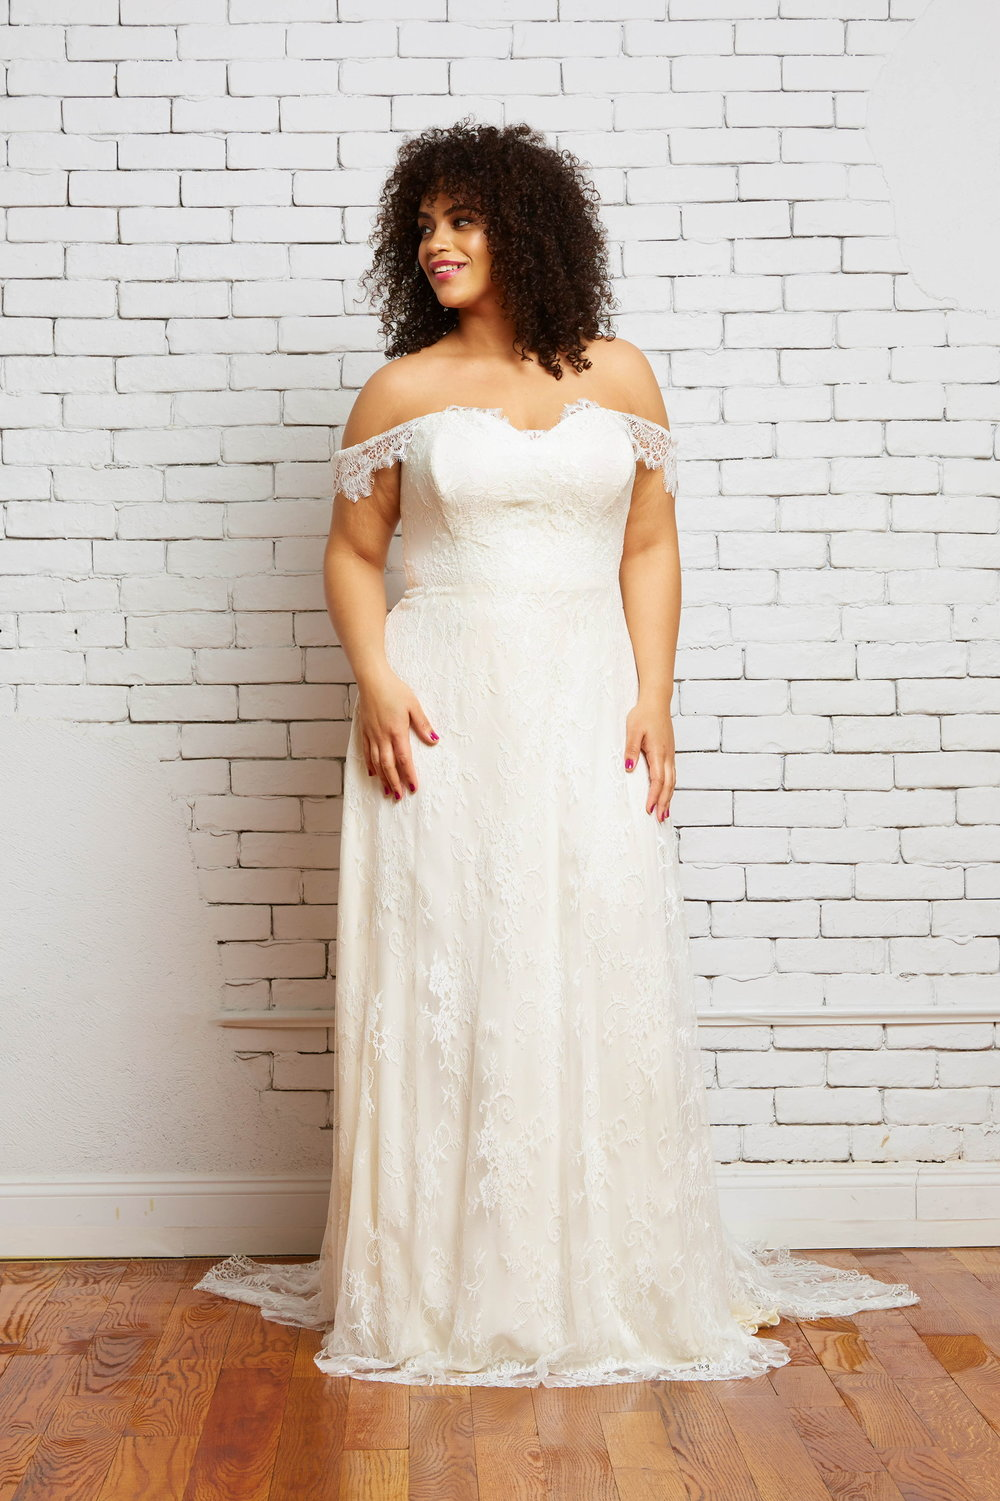 savannah-bridal-shop-ivory-and-beau-bridal-boutique-plus-size-trunk-show-plus-size-wedding-dresses-rebecca-schoneveld-trunk-show-3.jpeg